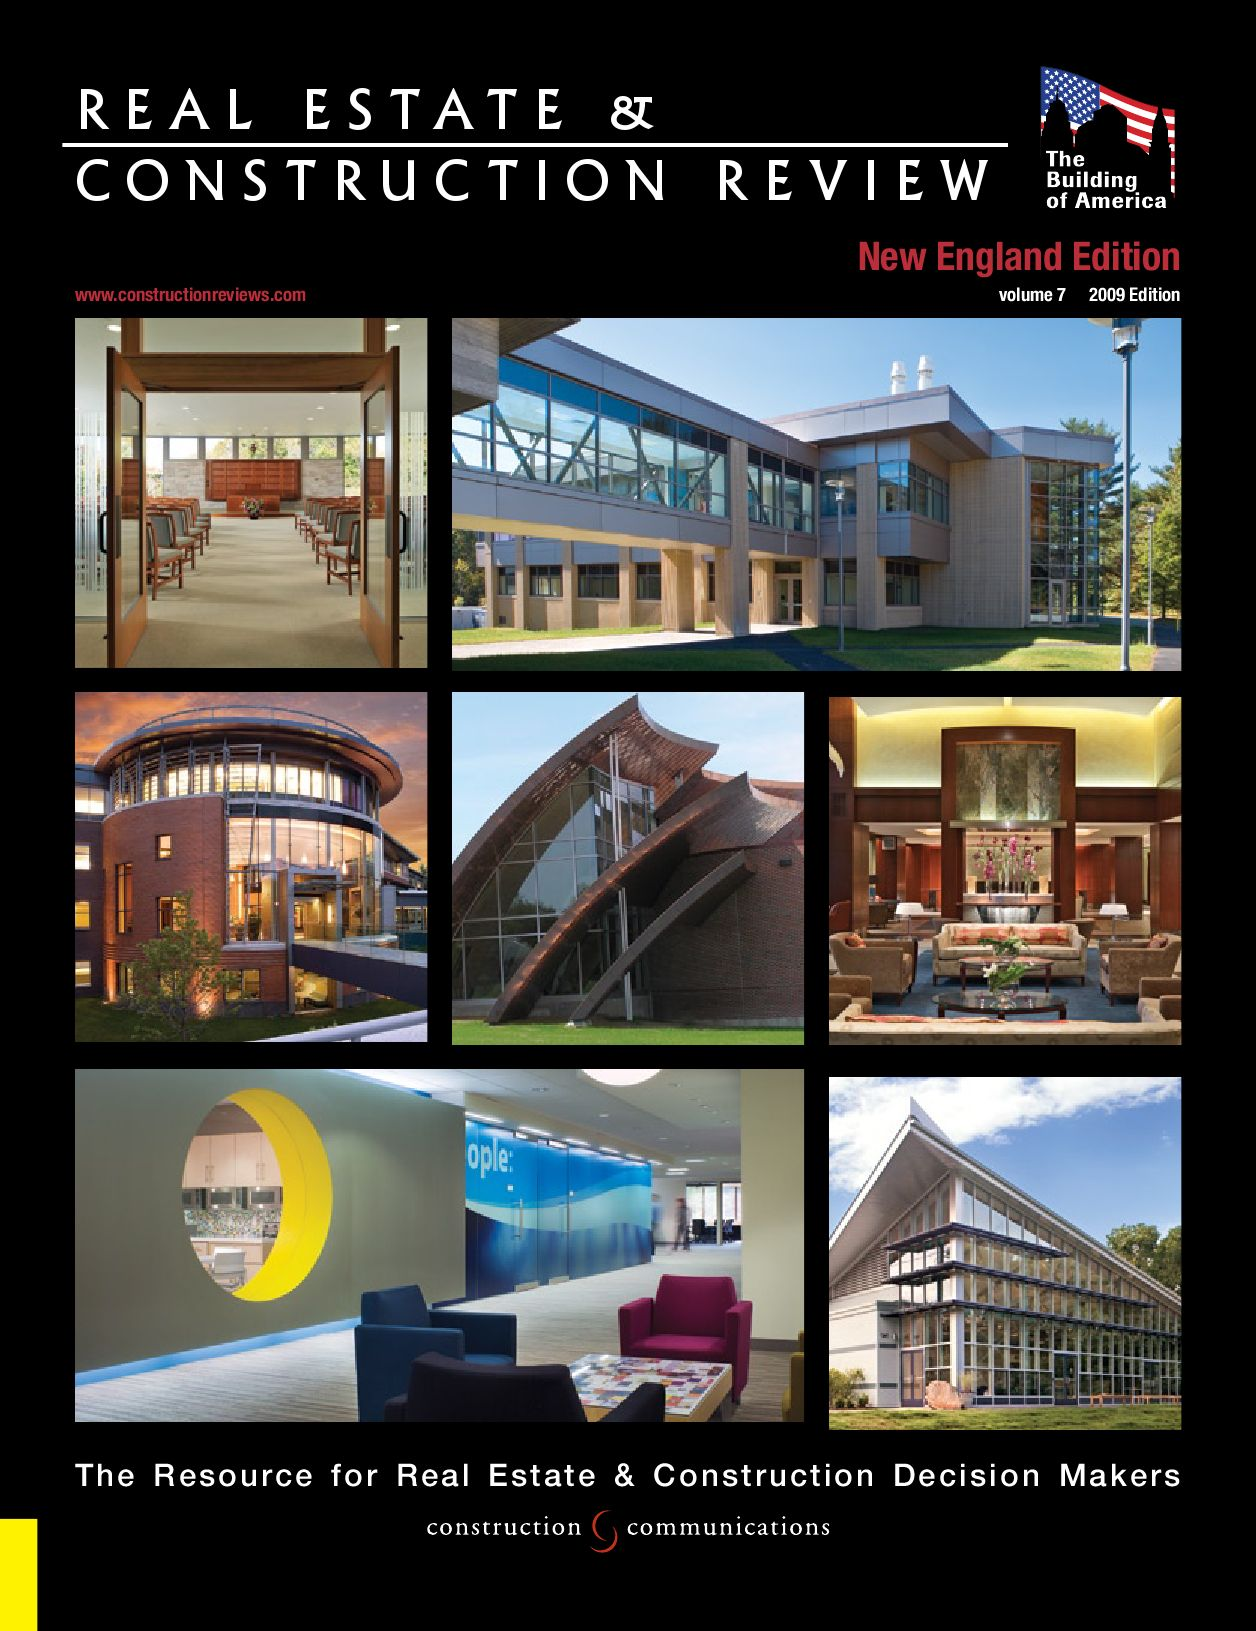 Real Estate Construction : Real estate construction review new england by